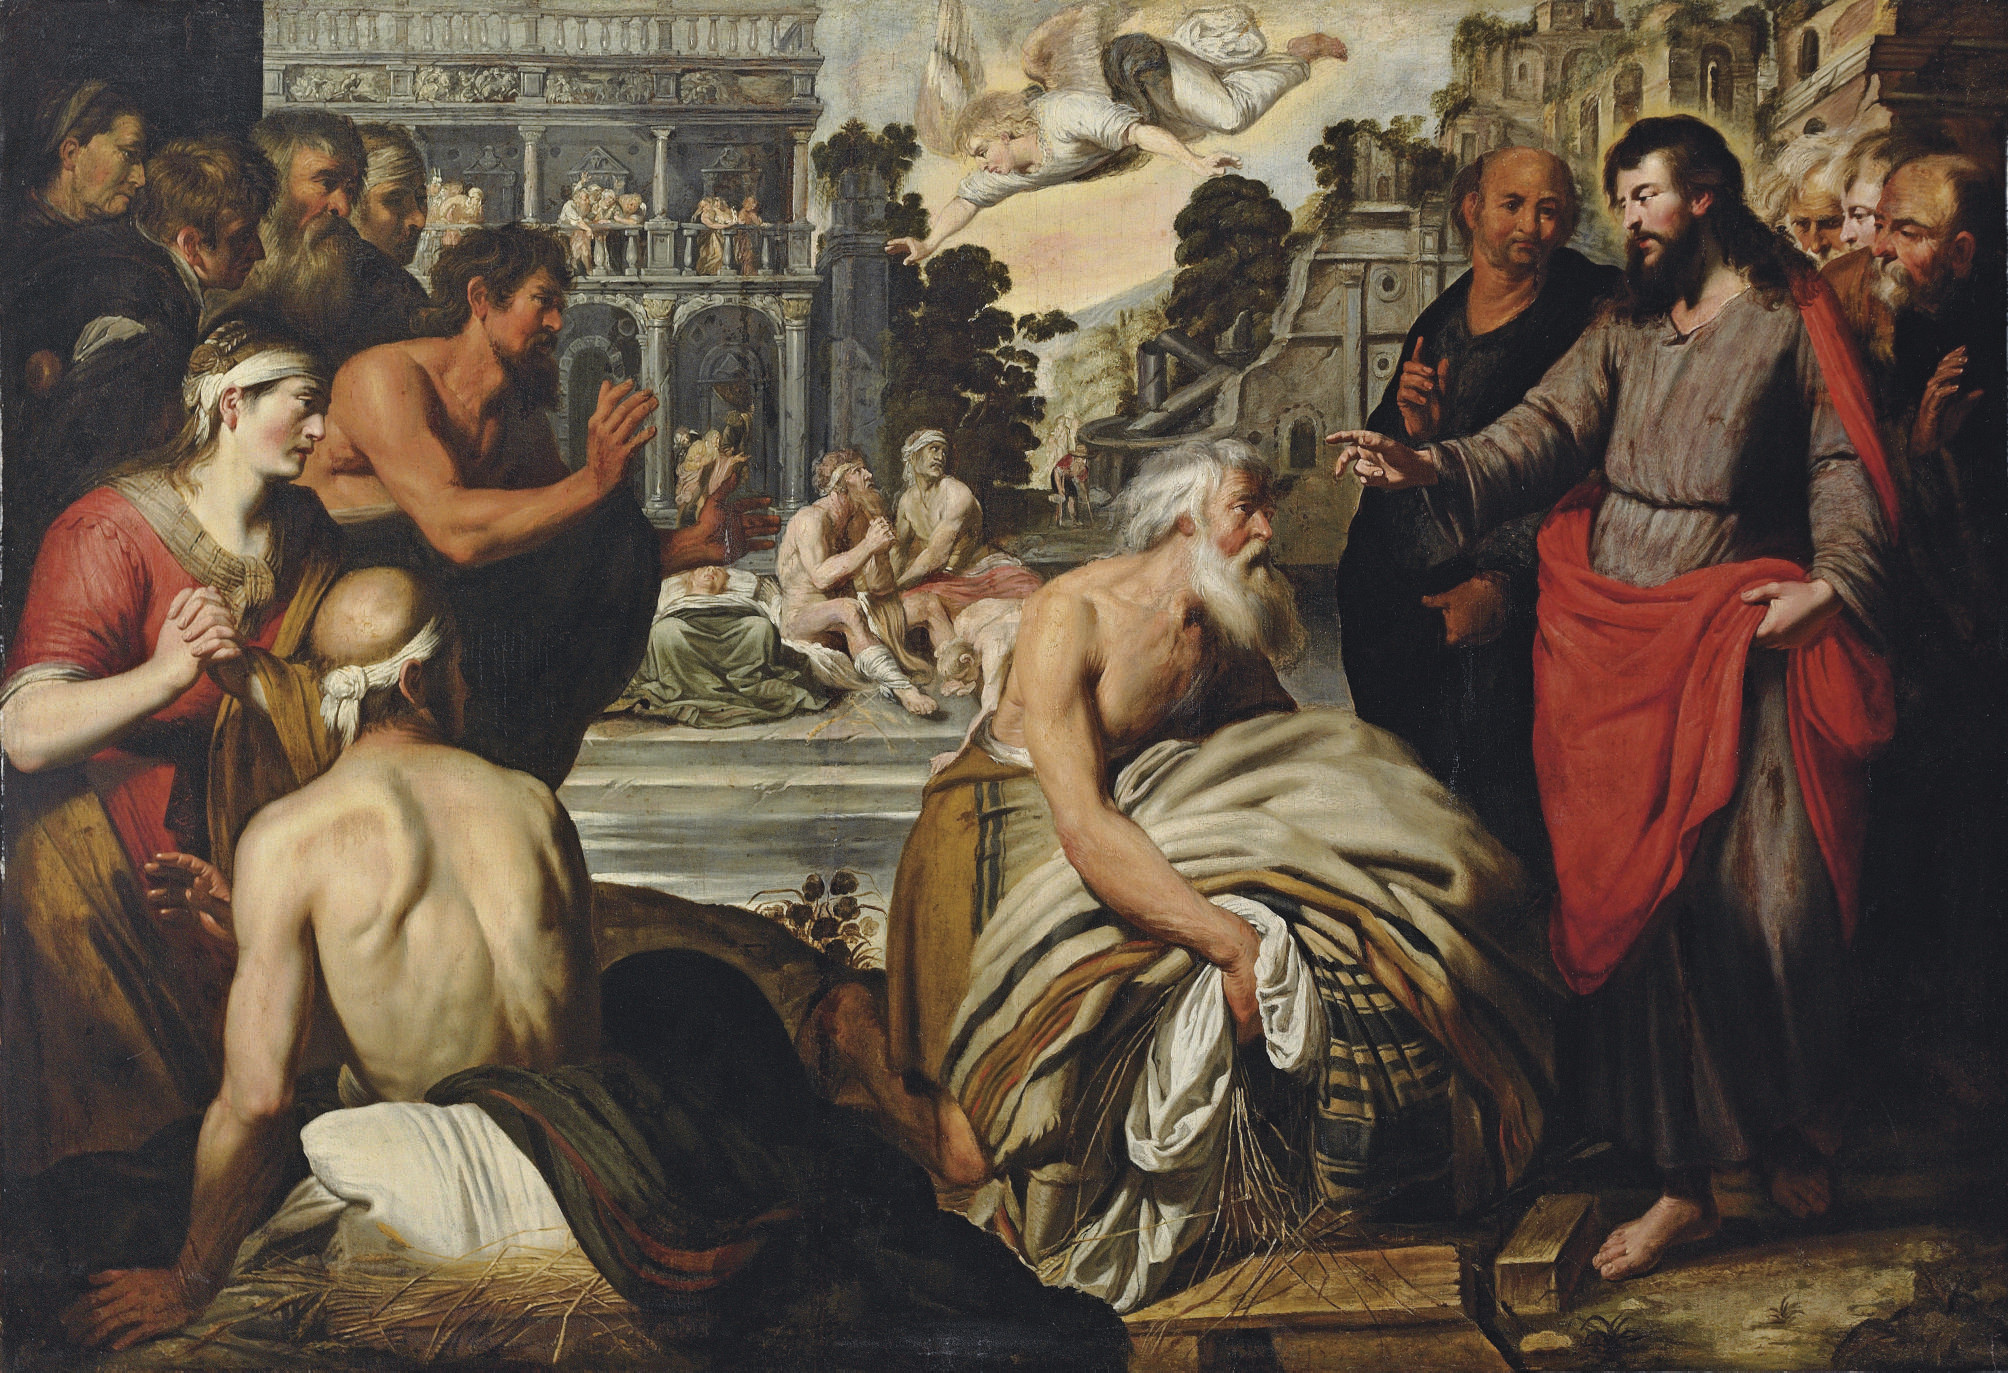 Christ at the Pool of Bethesda